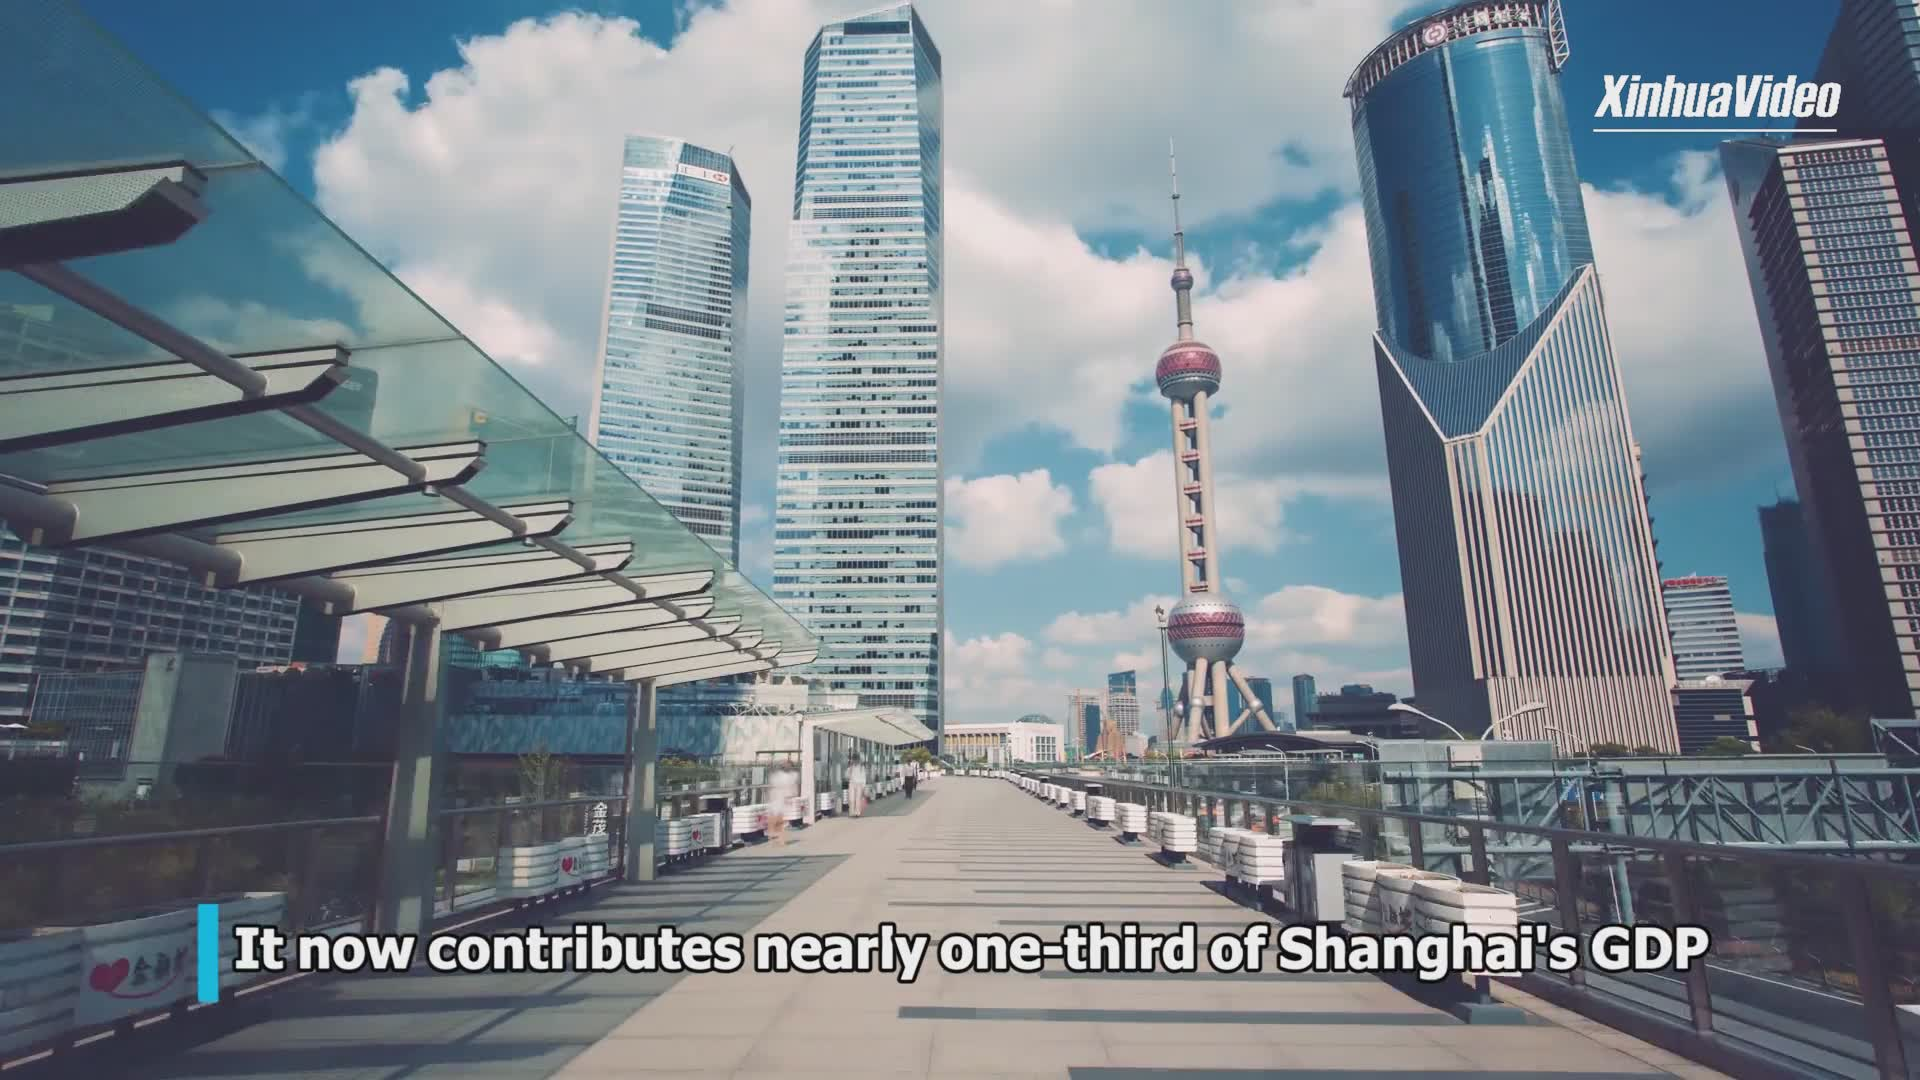 Shanghai's Pudong witnesses 30 years of development, opening-up